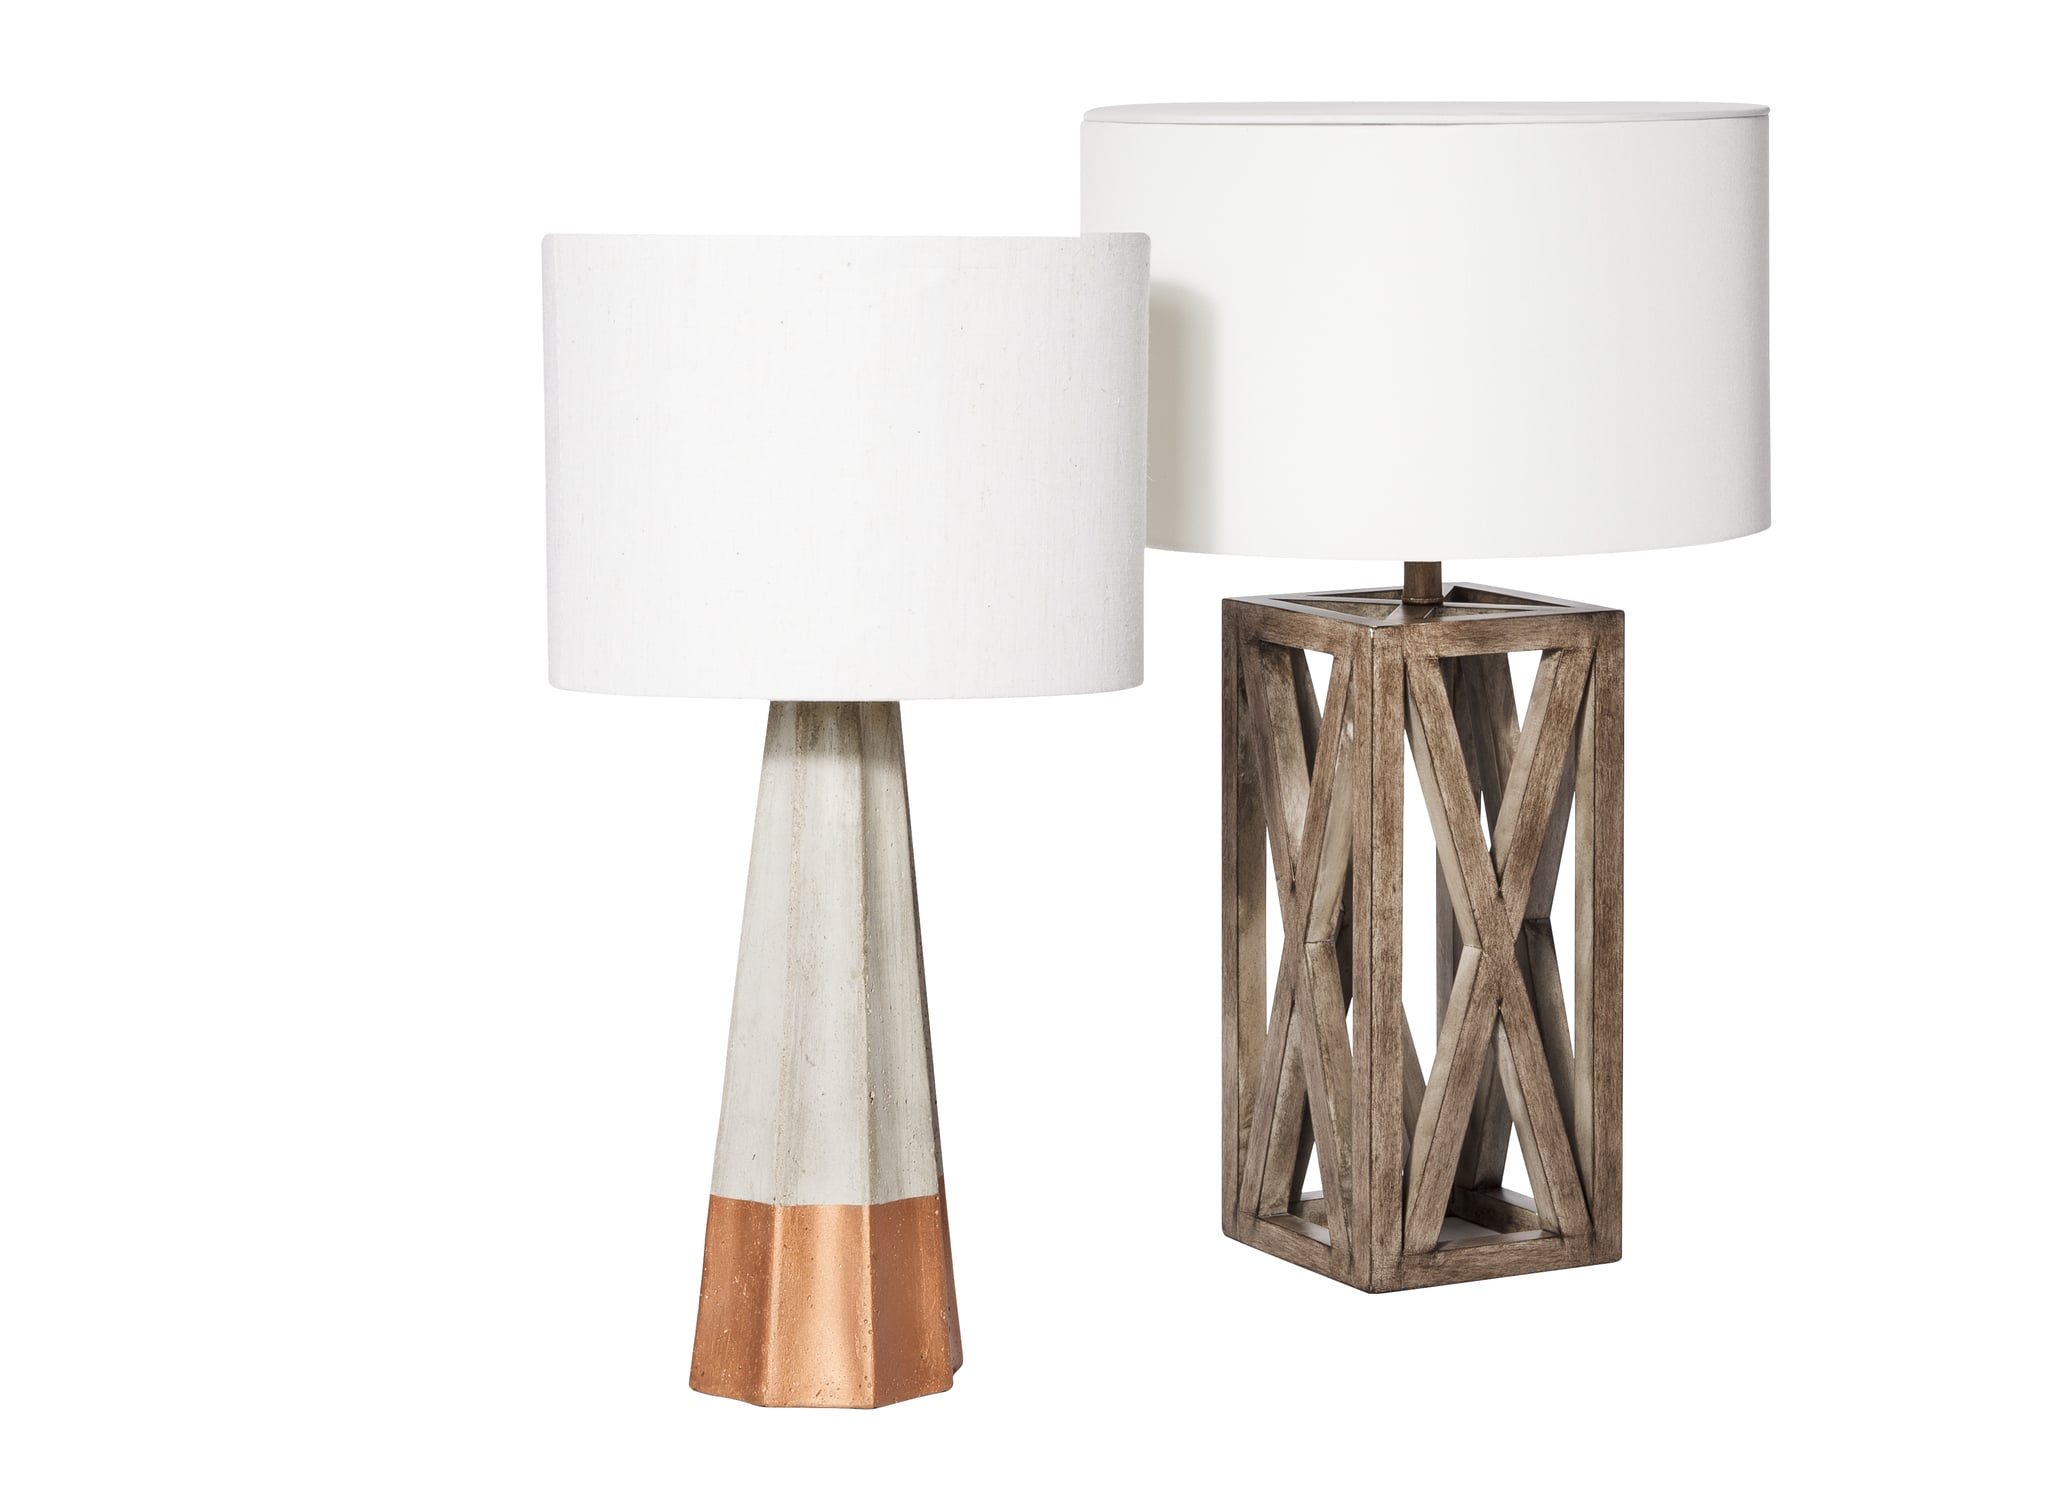 rose gold dipped cement table lamp 70 and wood box lamp 40 hide your credit cards you. Black Bedroom Furniture Sets. Home Design Ideas